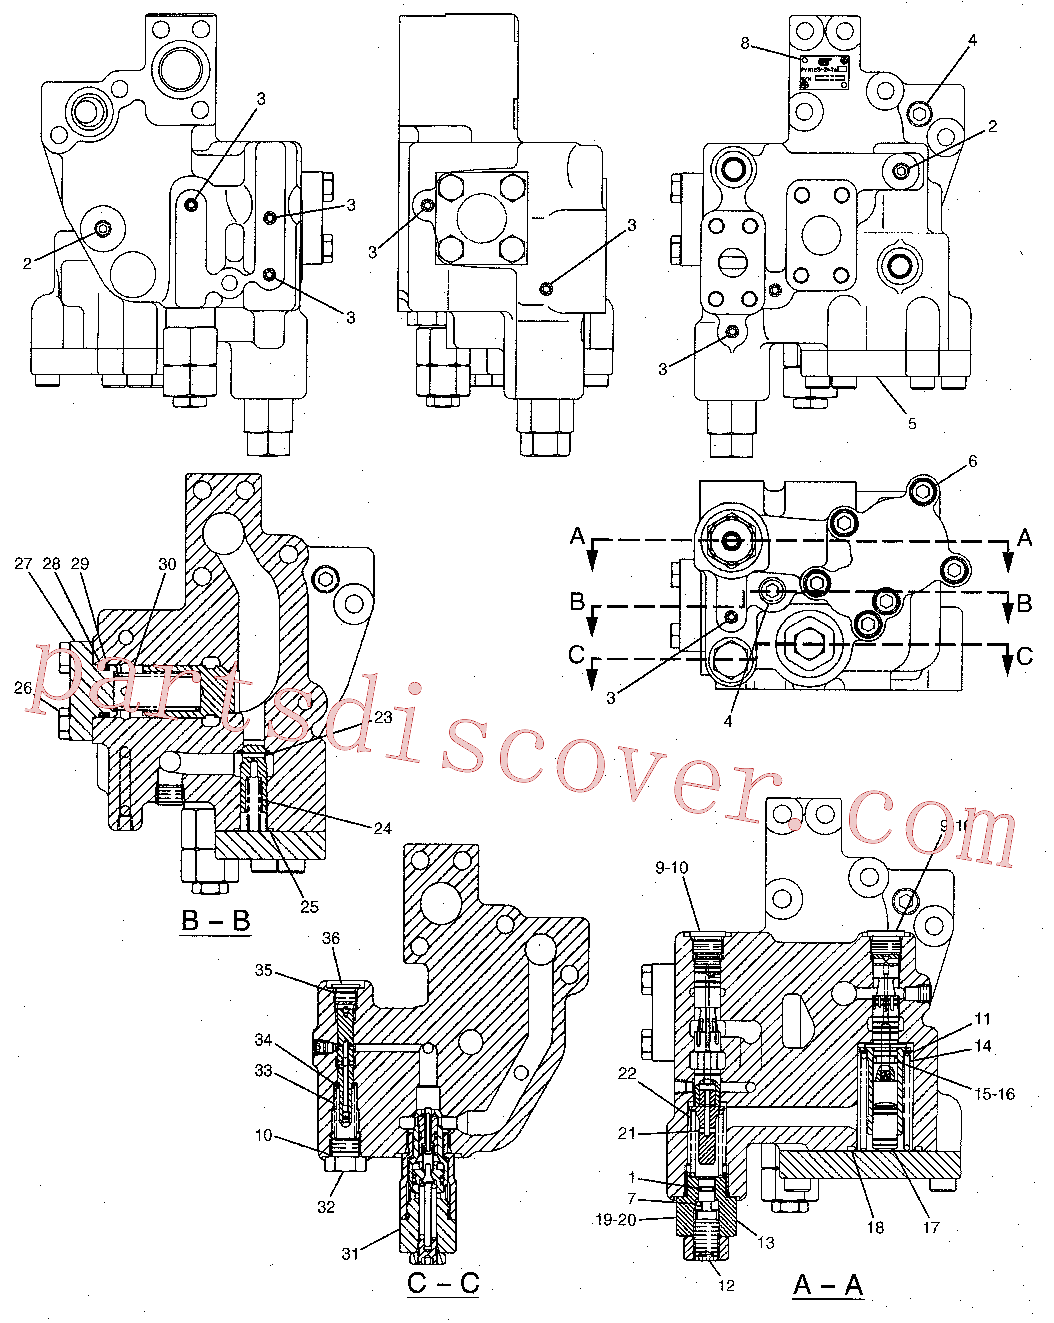 CAT 147-4184 for 336D2 L Excavator(EXC) hydraulic system 171-3266 Assembly